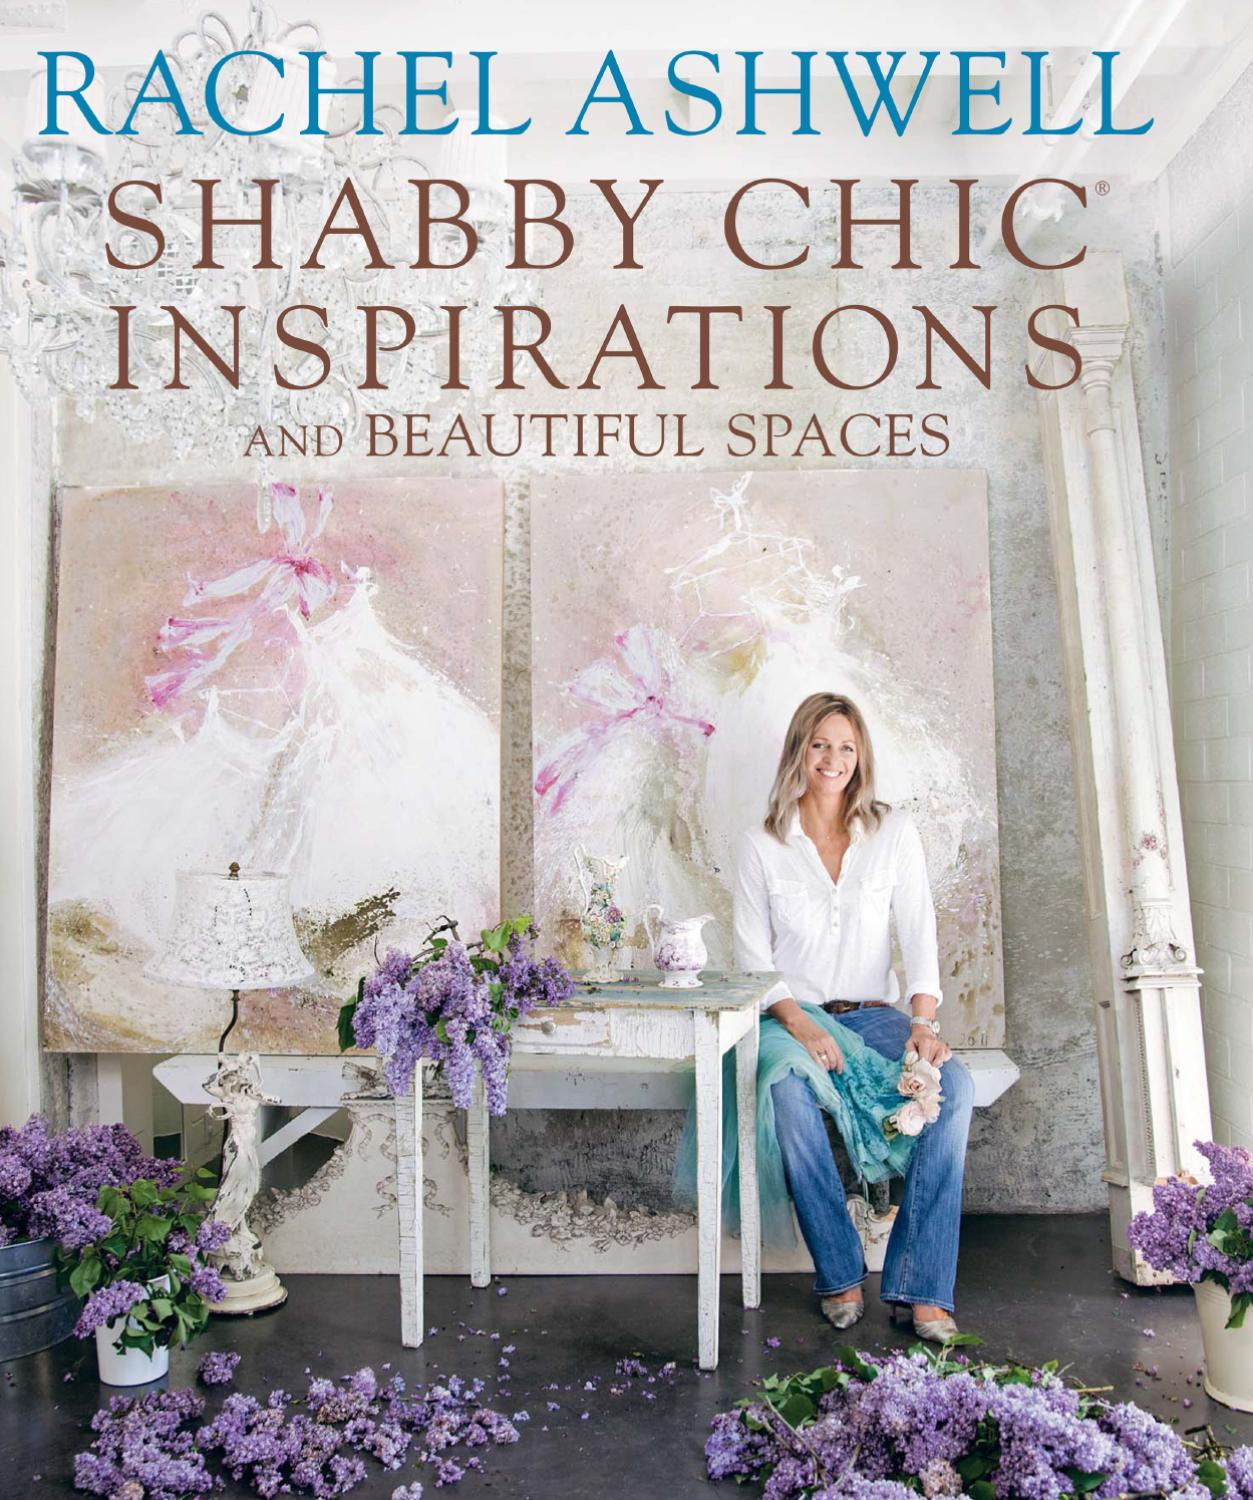 rachel ashwell shabby chic inspirations and beautiful spaces by cico books issuu. Black Bedroom Furniture Sets. Home Design Ideas